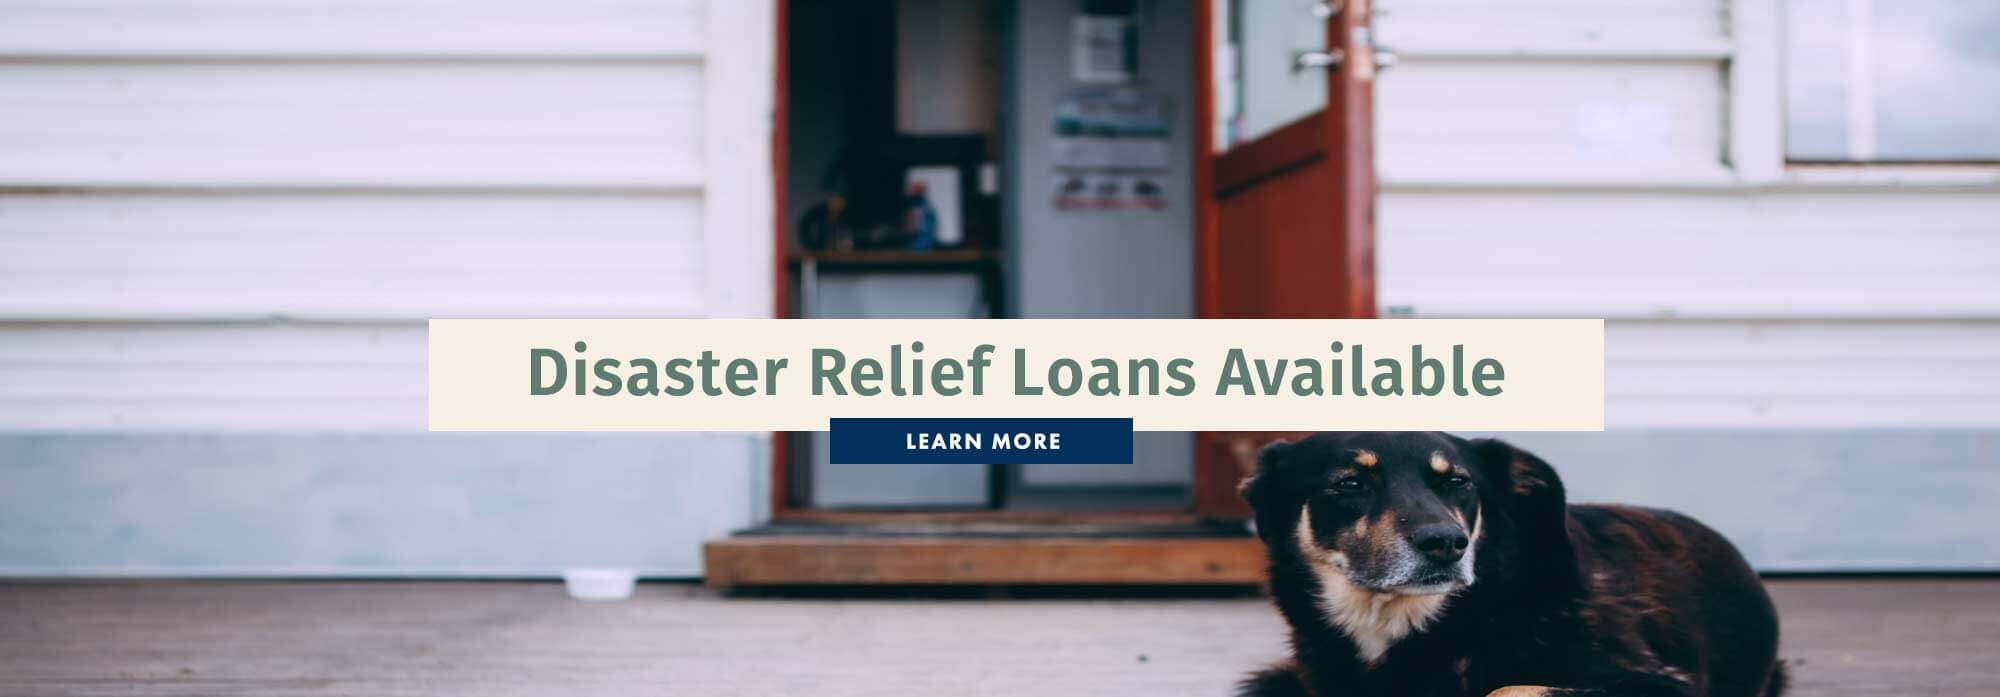 Disaster Relief Loans Available